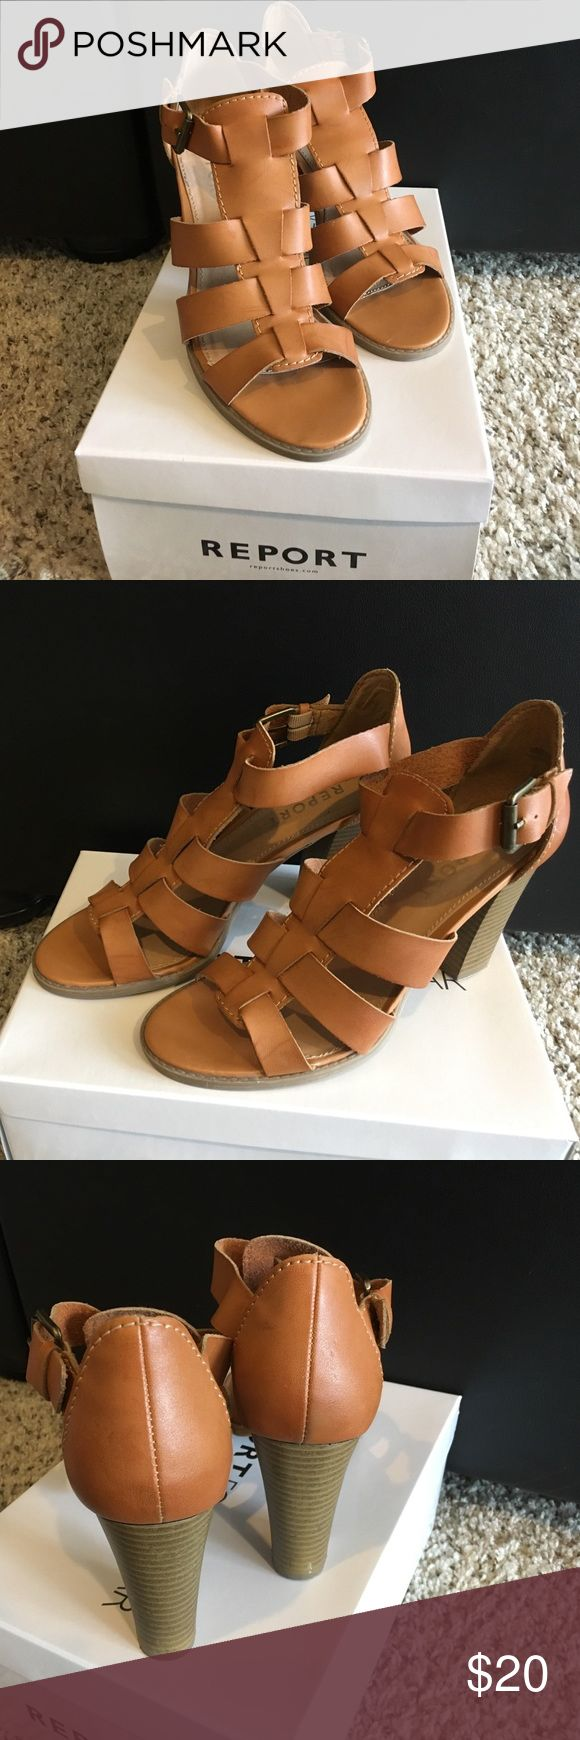 Ladies shoes size 9, very good condition, Report Gently wore ladies shoes camel color boxed Report Shoes Heels